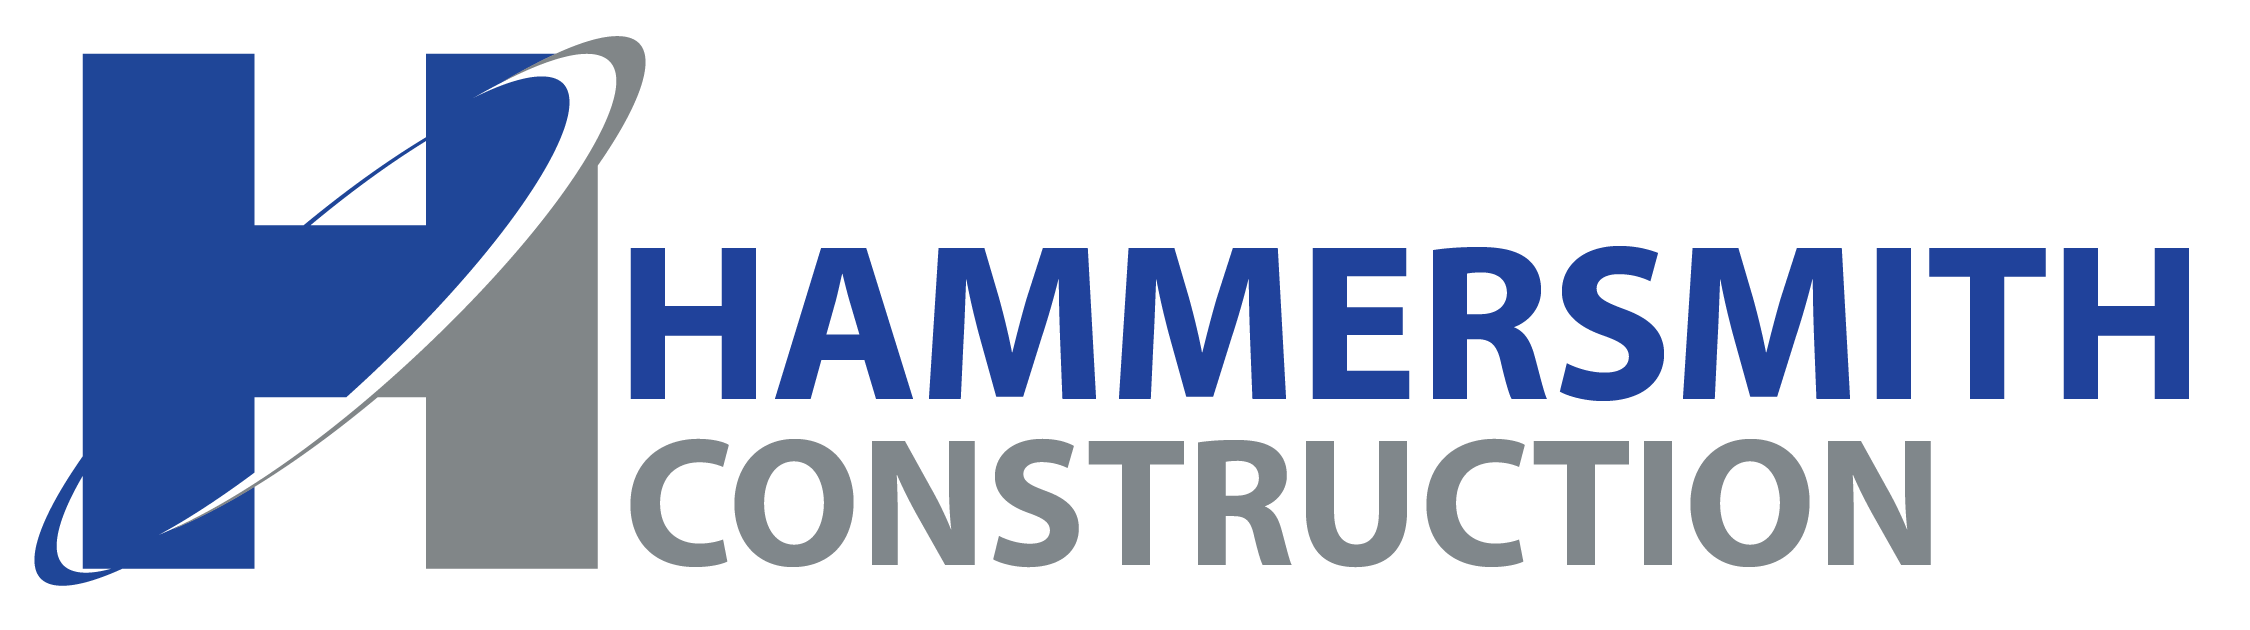 Hammersmith Construction Logo